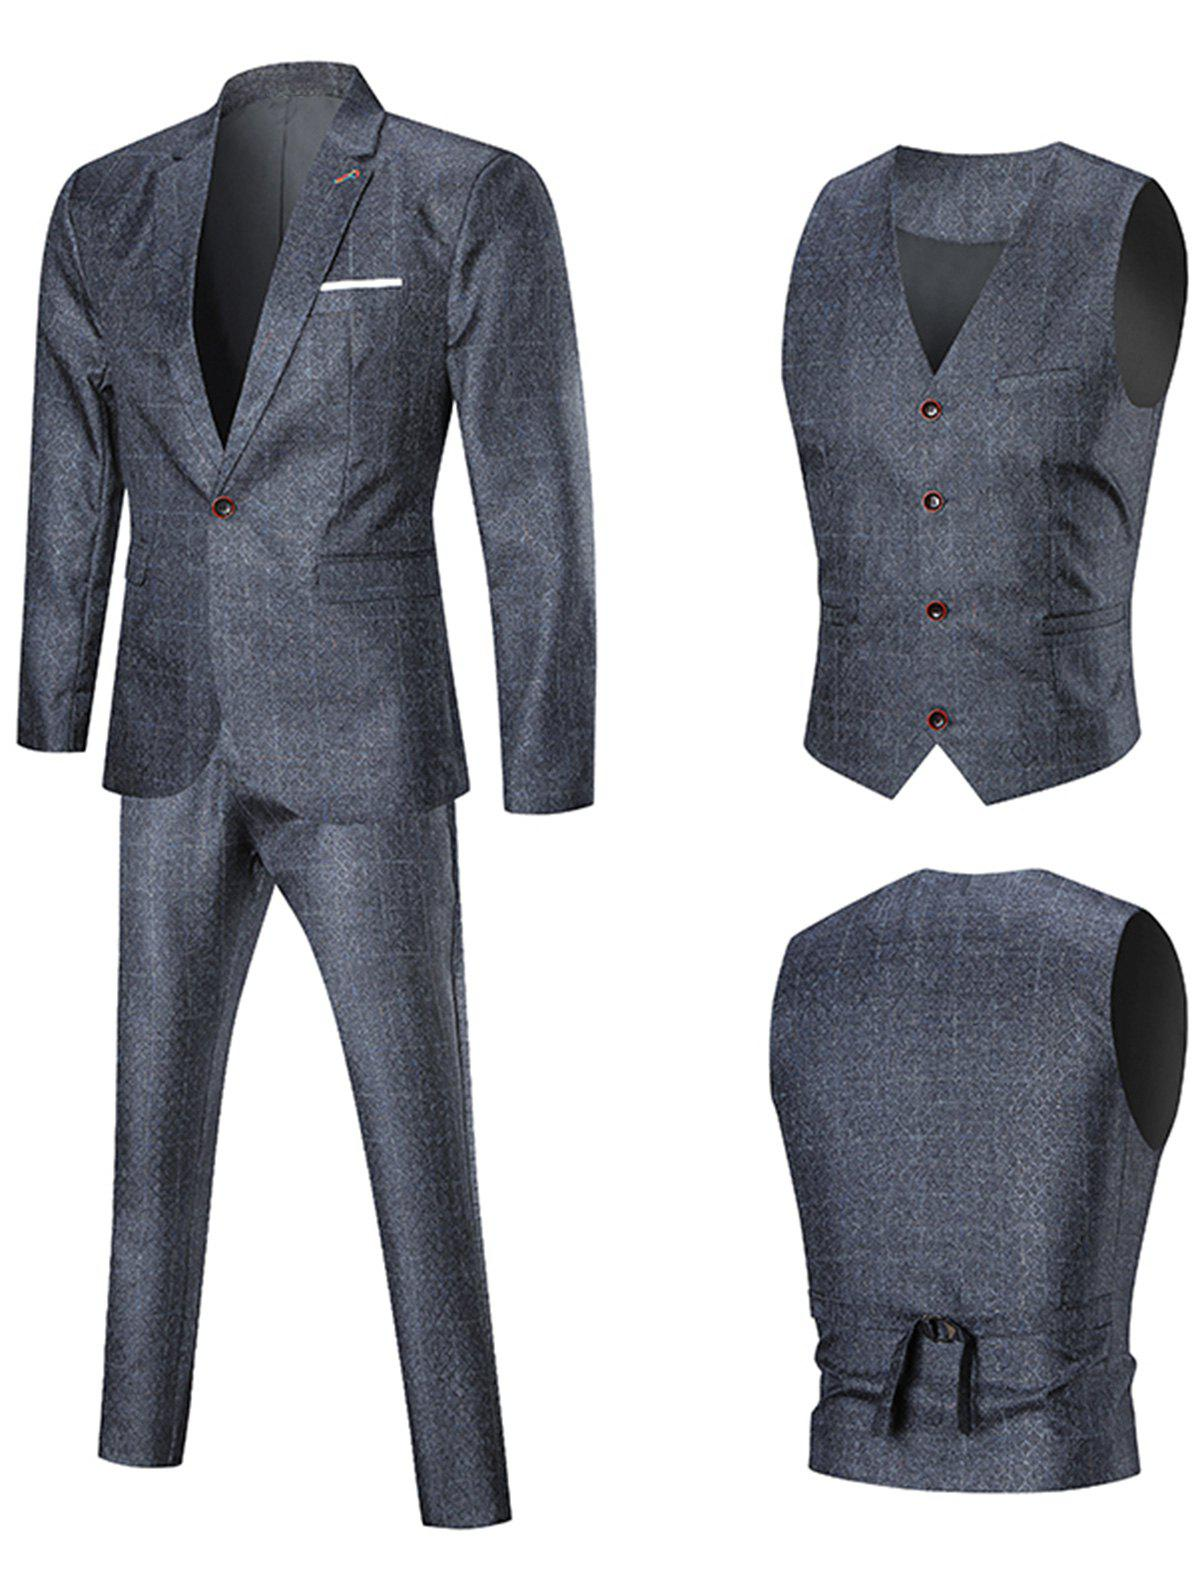 Argyle One Button Three Piece Business Suit - PEARL DARK GREY 5XL